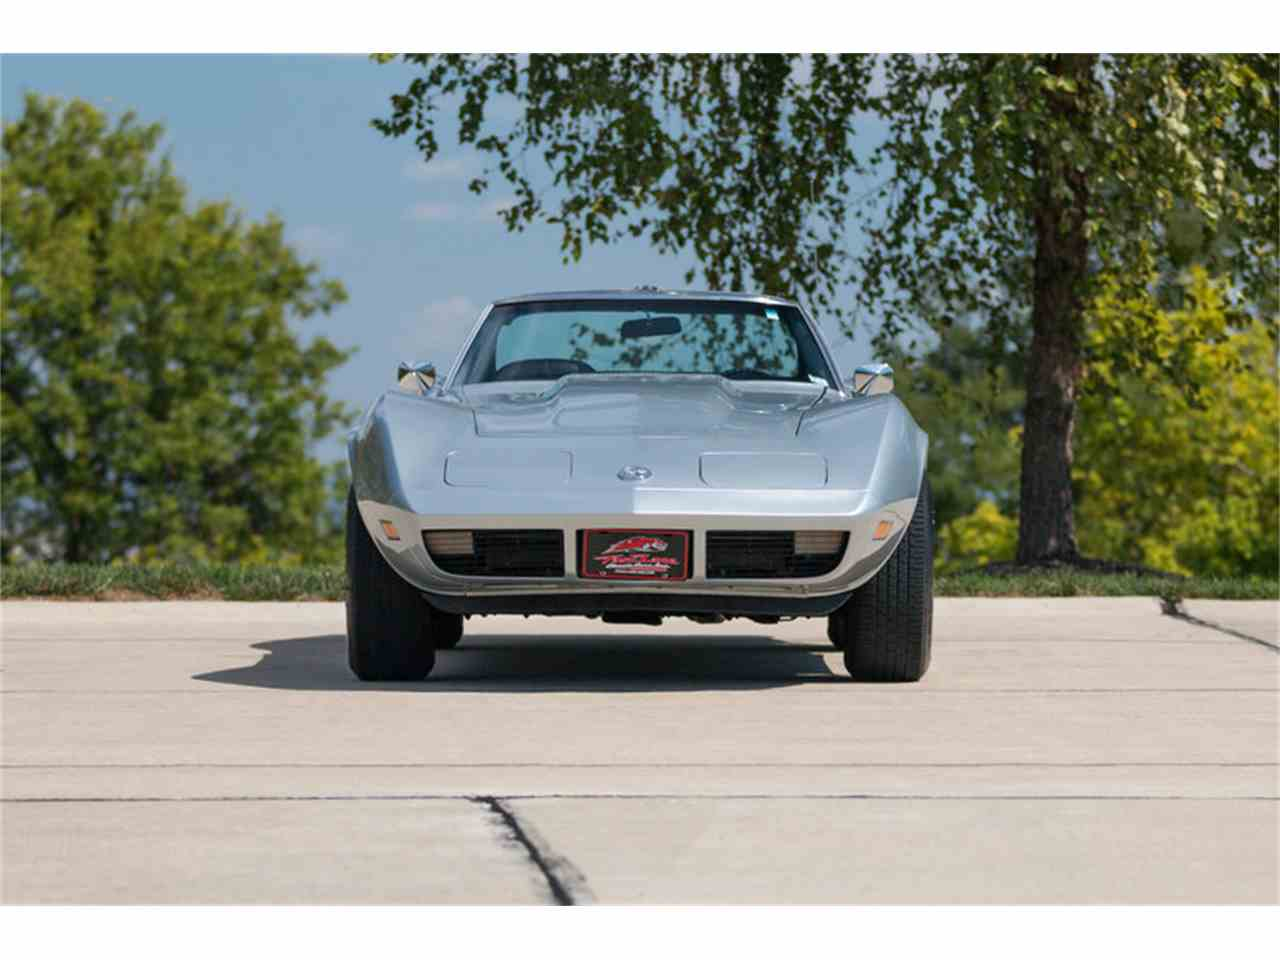 Large Picture of 1973 Chevrolet Corvette located in Missouri - $19,995.00 Offered by Fast Lane Classic Cars Inc. - LUKQ